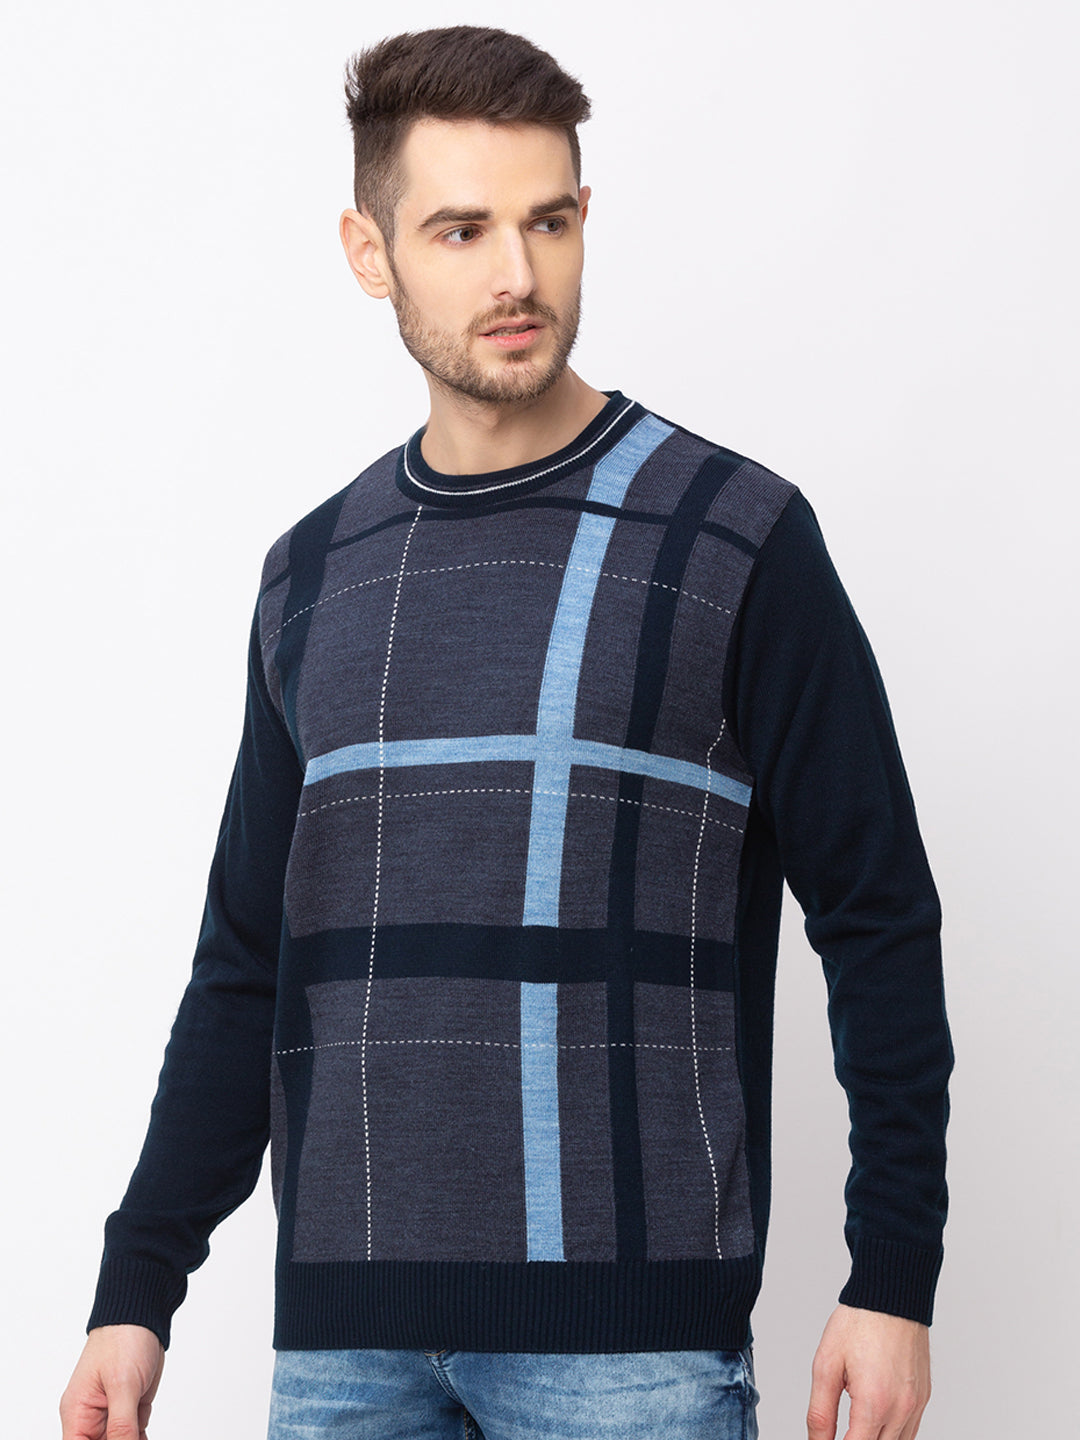 Globus Navy Blue Checked Pullover Sweater-2